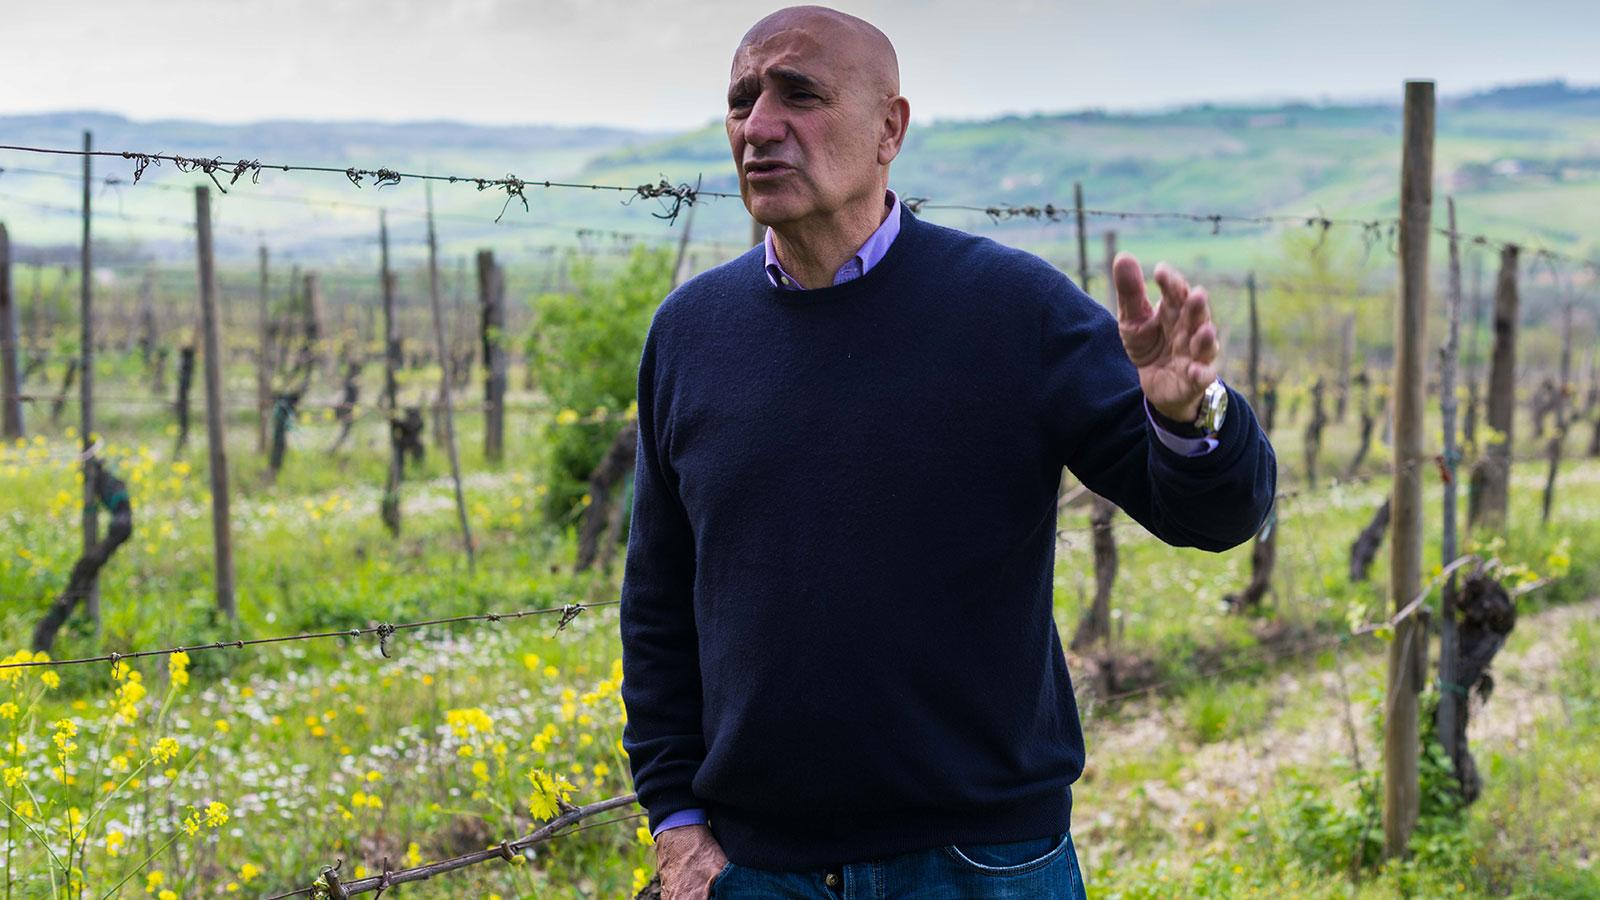 Federico Carletti has spent his life exploring wine and terroirs in Montepulciano.